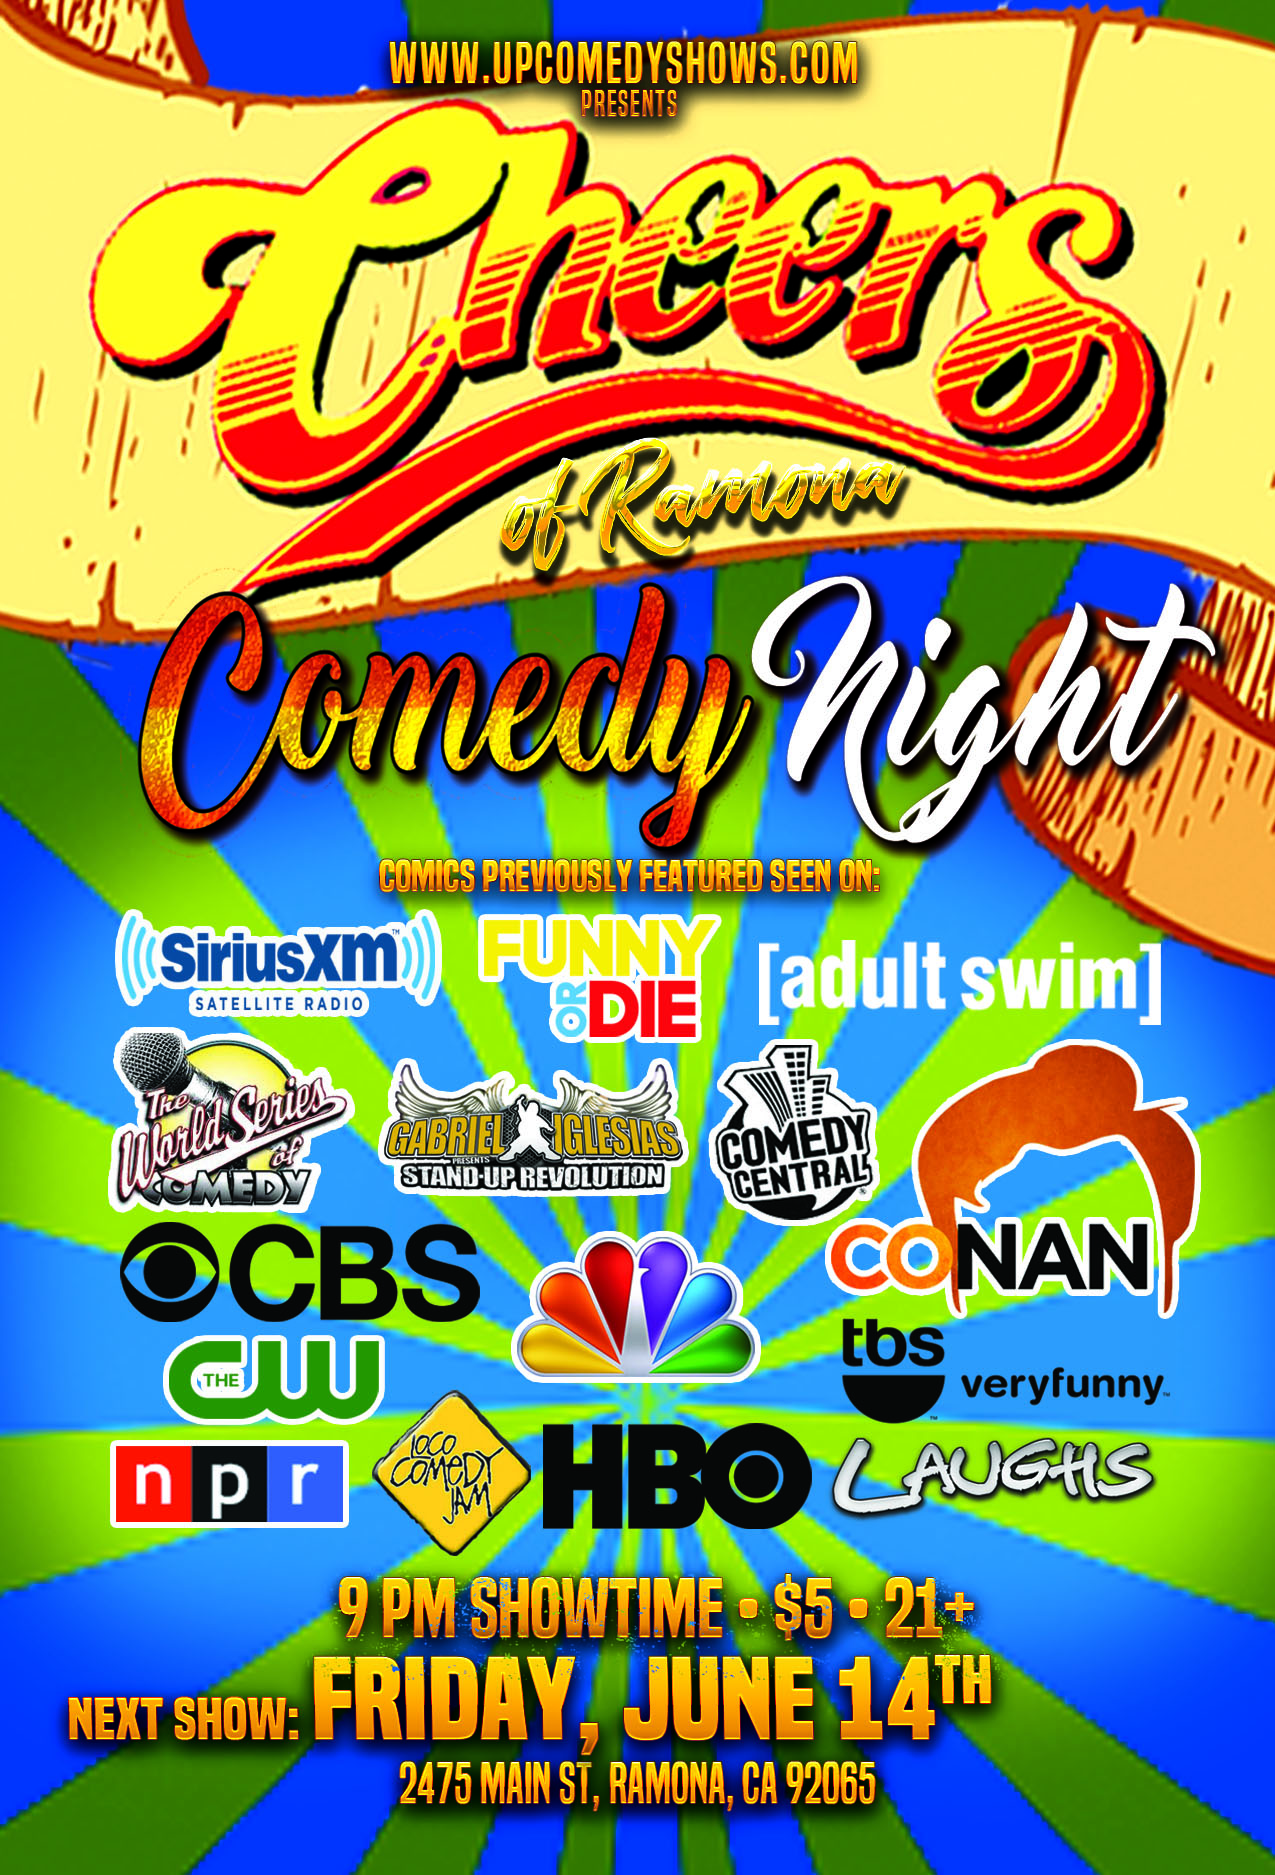 Cheers Ramona Comedy Night - 06.14.19 - General